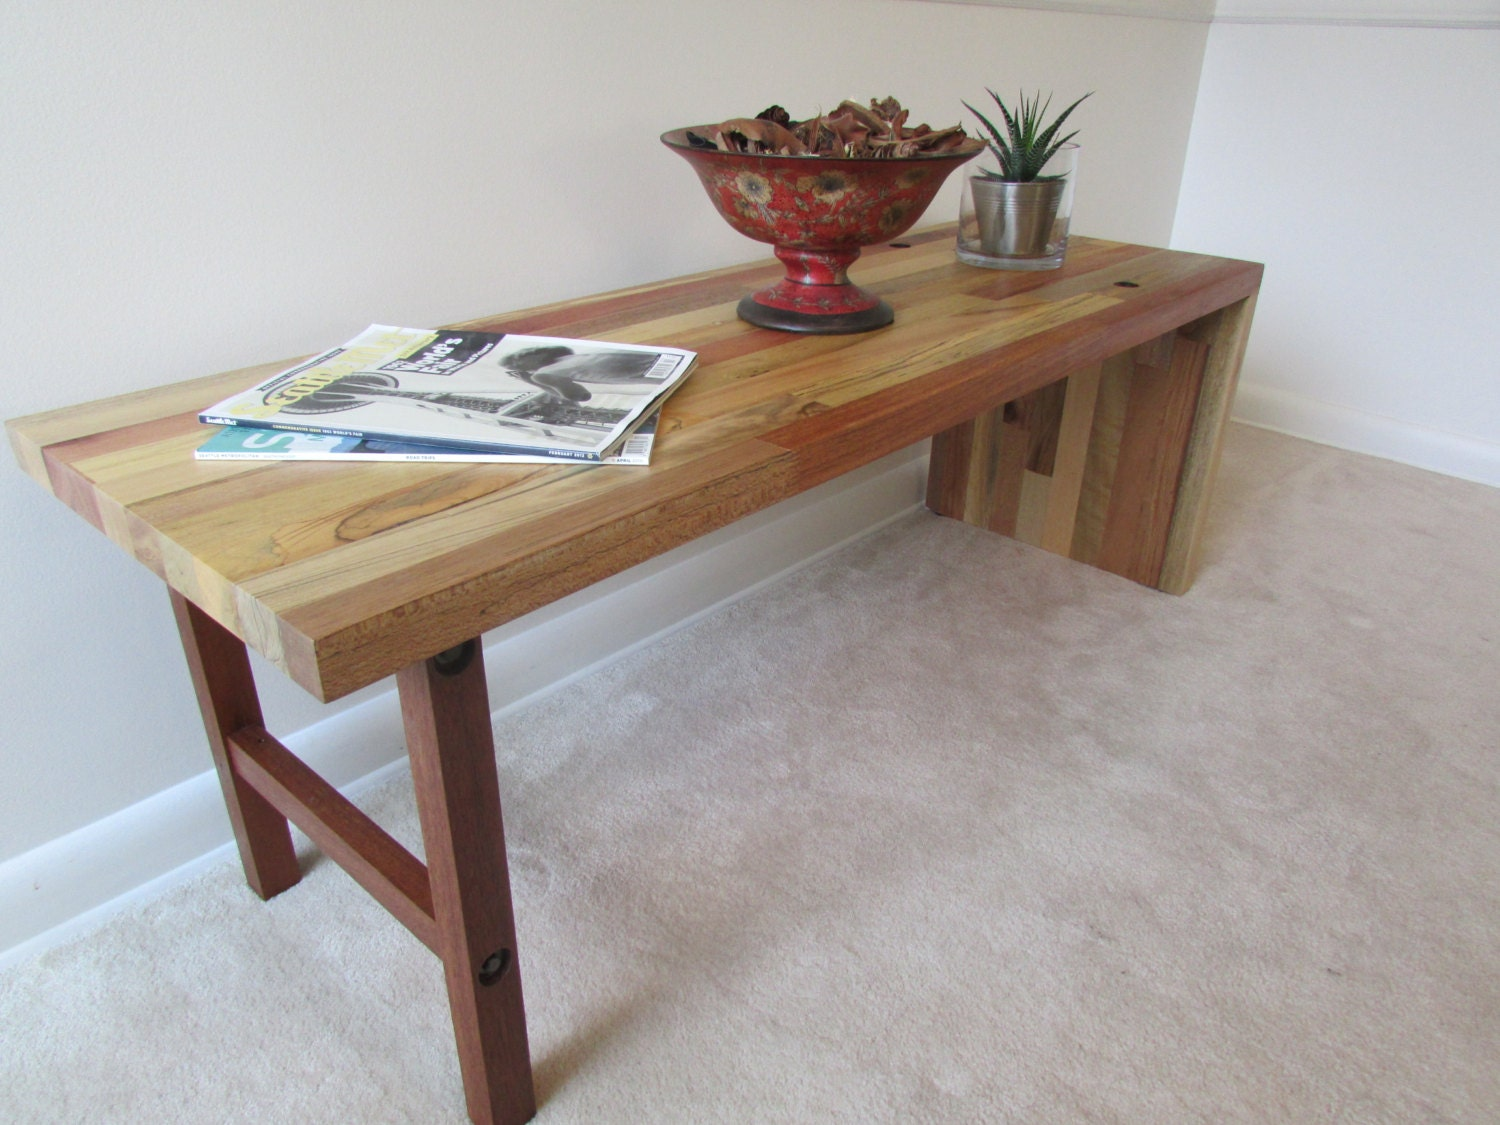 Reclaimed Wood Bench Or Narrow Coffee Table By